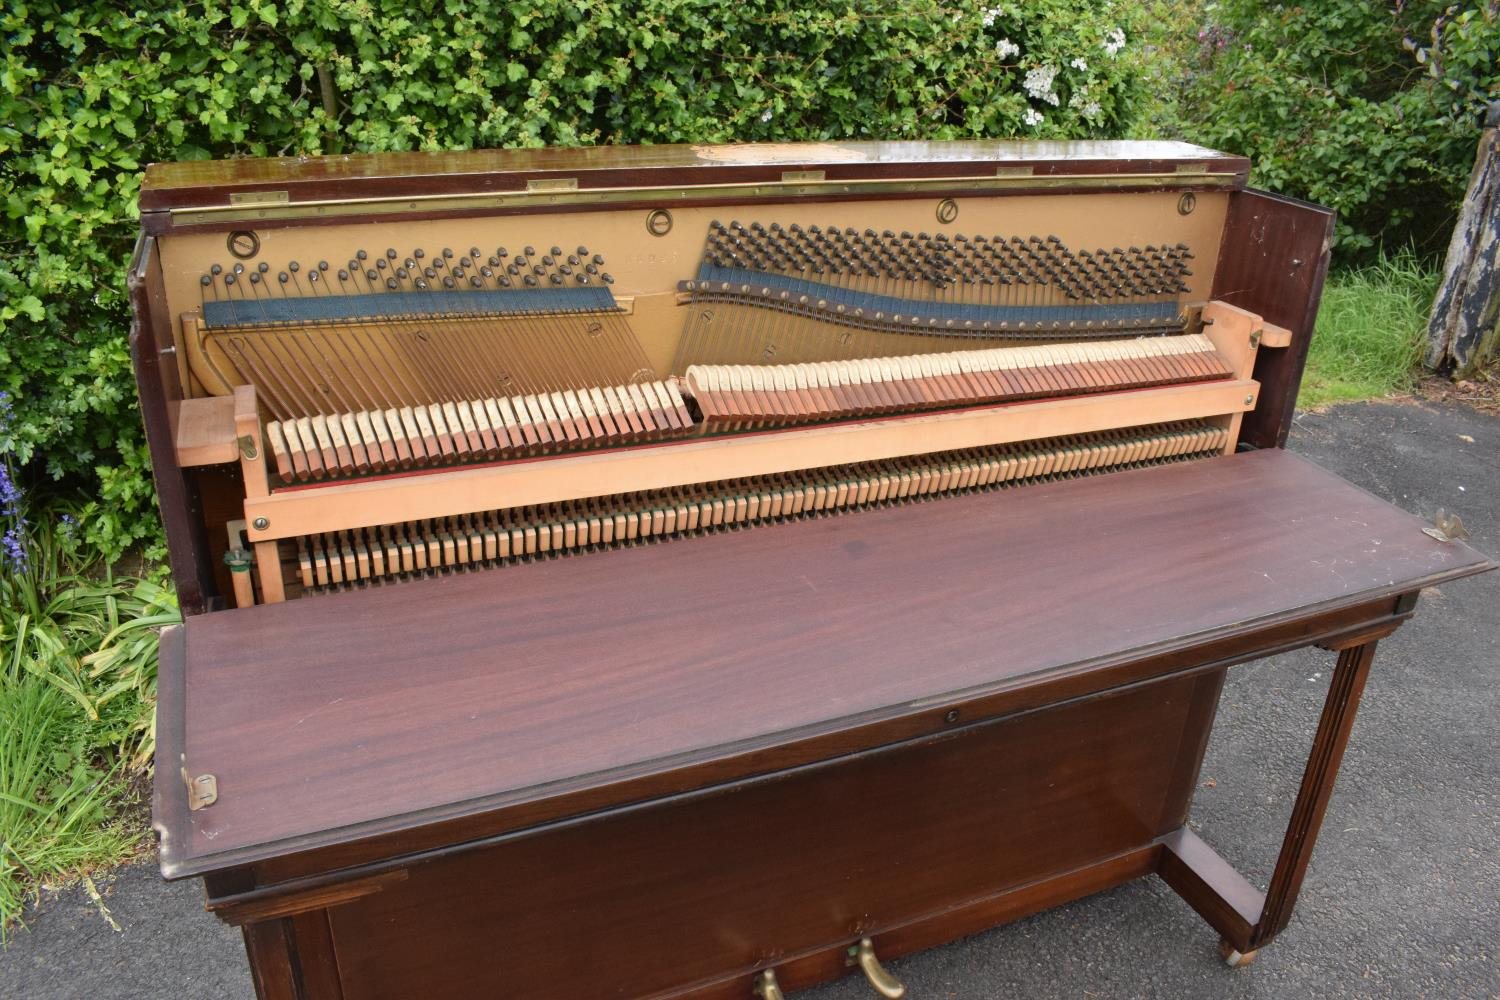 A Breedon and Middleton 'Mydleton' of 42 High Street Crewe upright wooden piano with 85 keys - Image 7 of 11